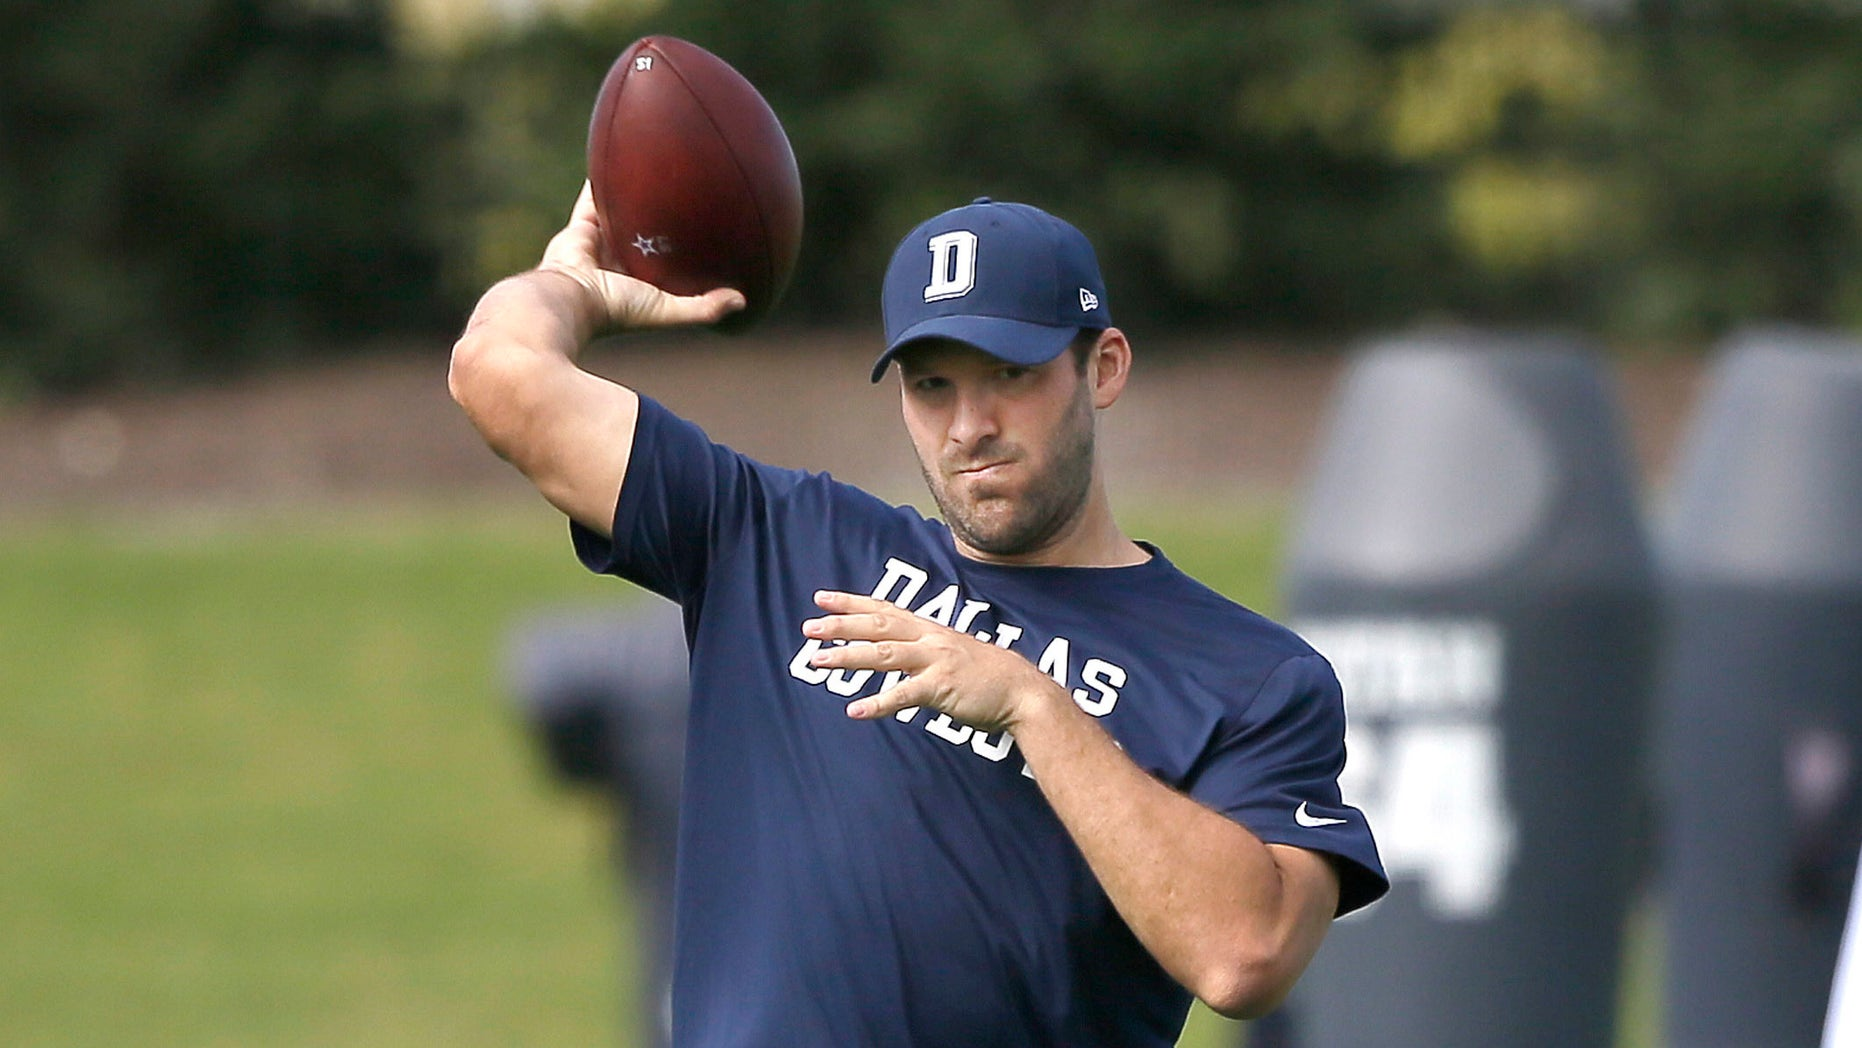 Dallas Cowboys quarterback Tony Romo throws during NFL football practice at the team's practice facility in Frisco, Texas, Wednesday, Oct. 26, 2016. (AP Photo/LM Otero)